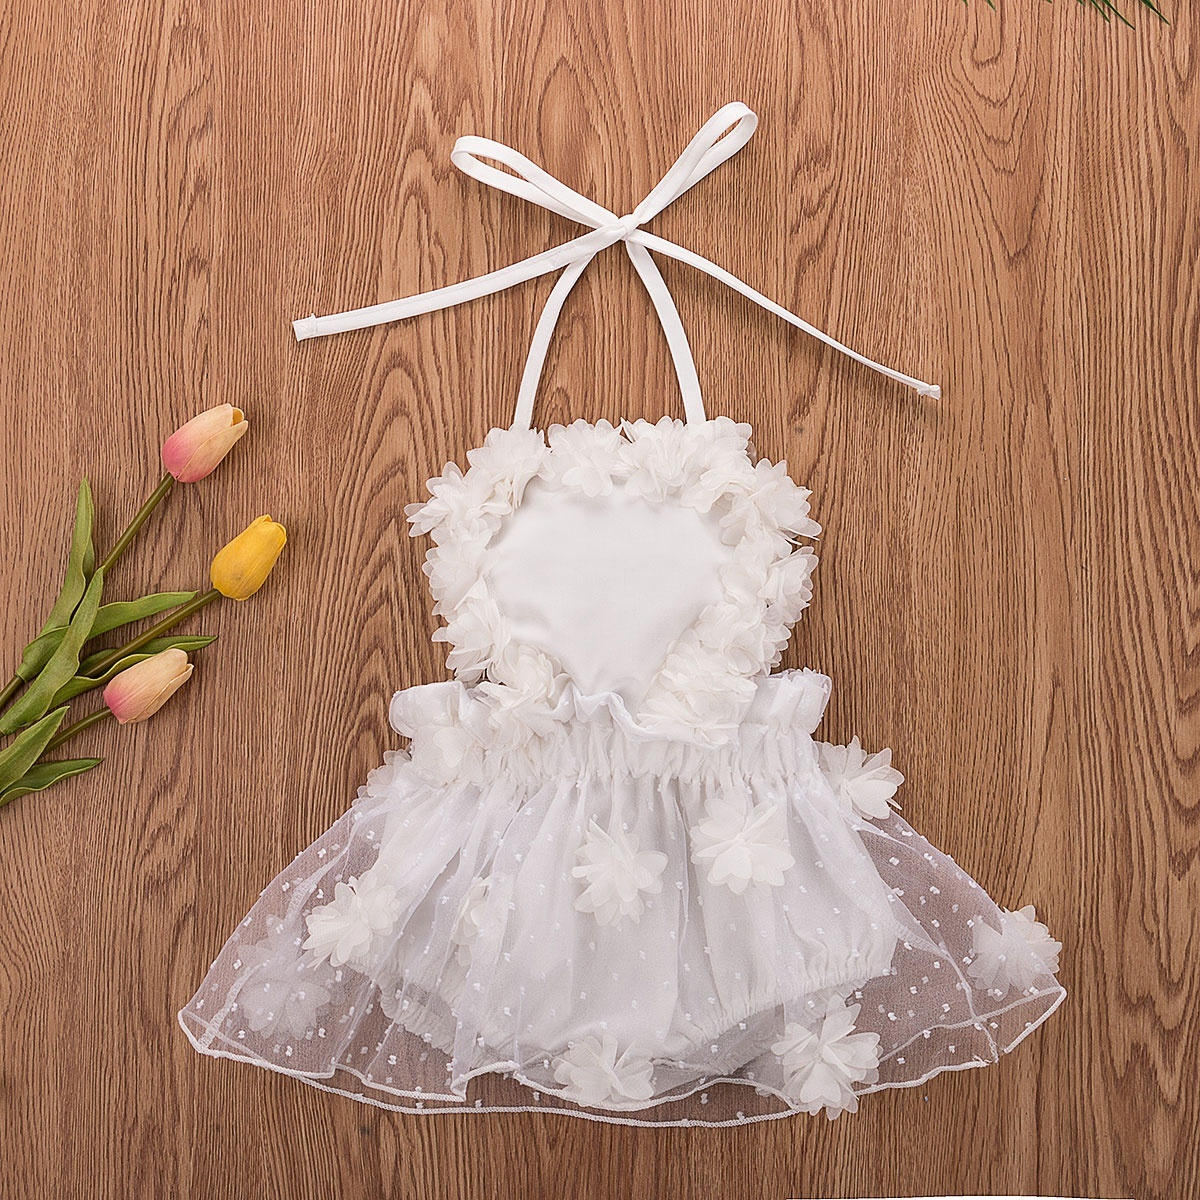 Baby Girls Lace Romper Flutter Sleeve Bodysuit Jumpsuit Outfit Clothes Xmas Gift